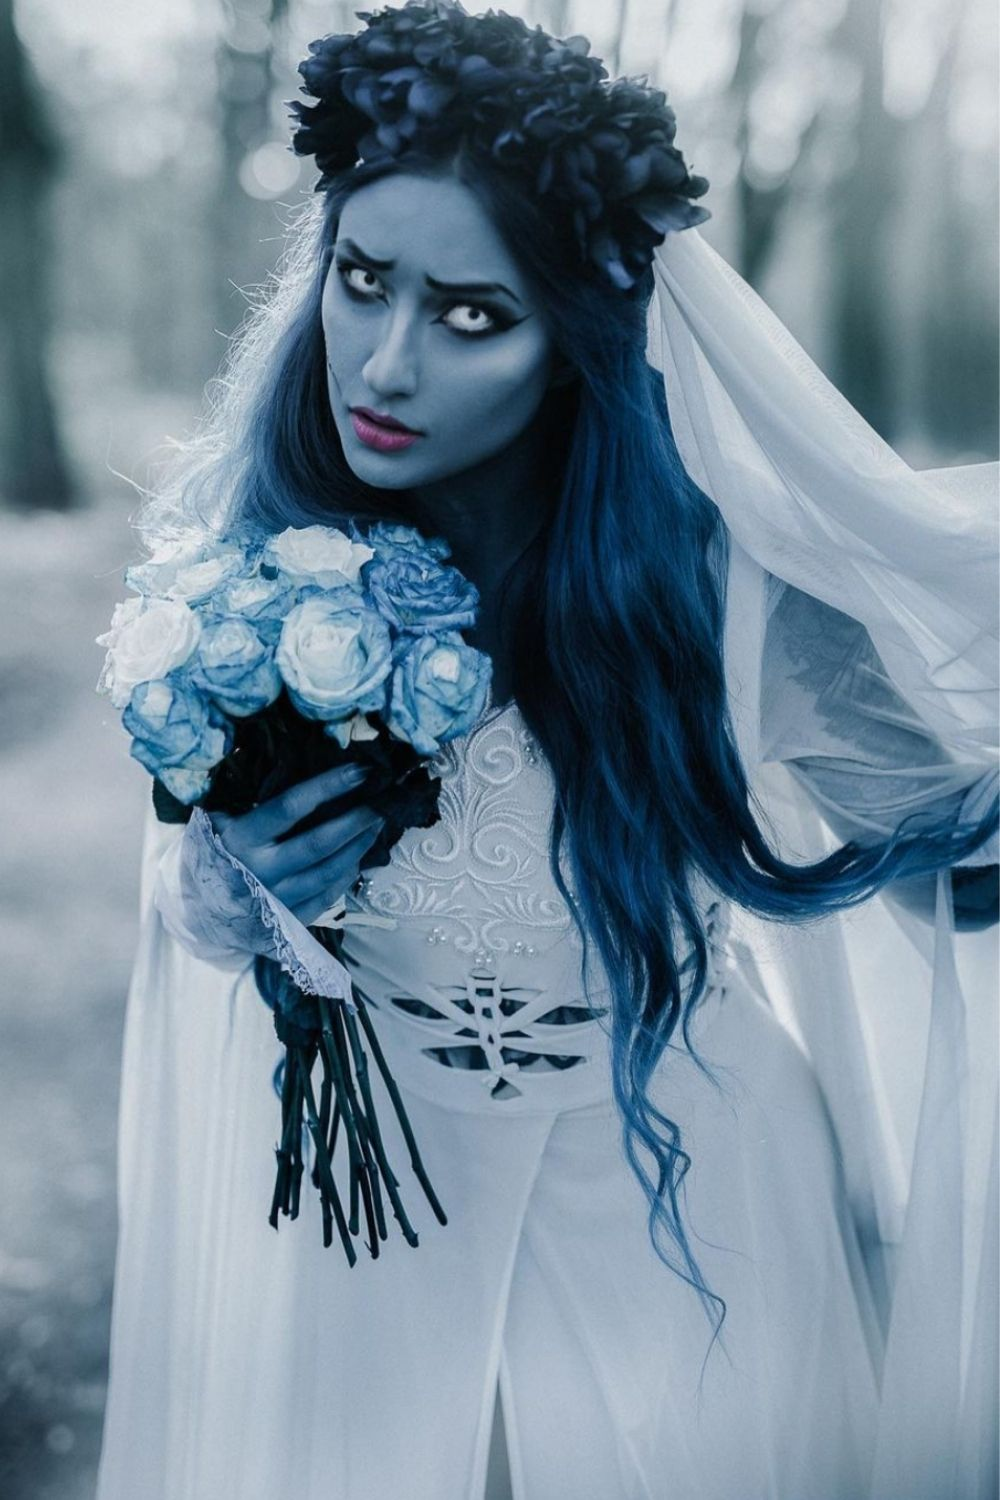 25 Creative Halloween costumes 2021 trends and ideas to try!